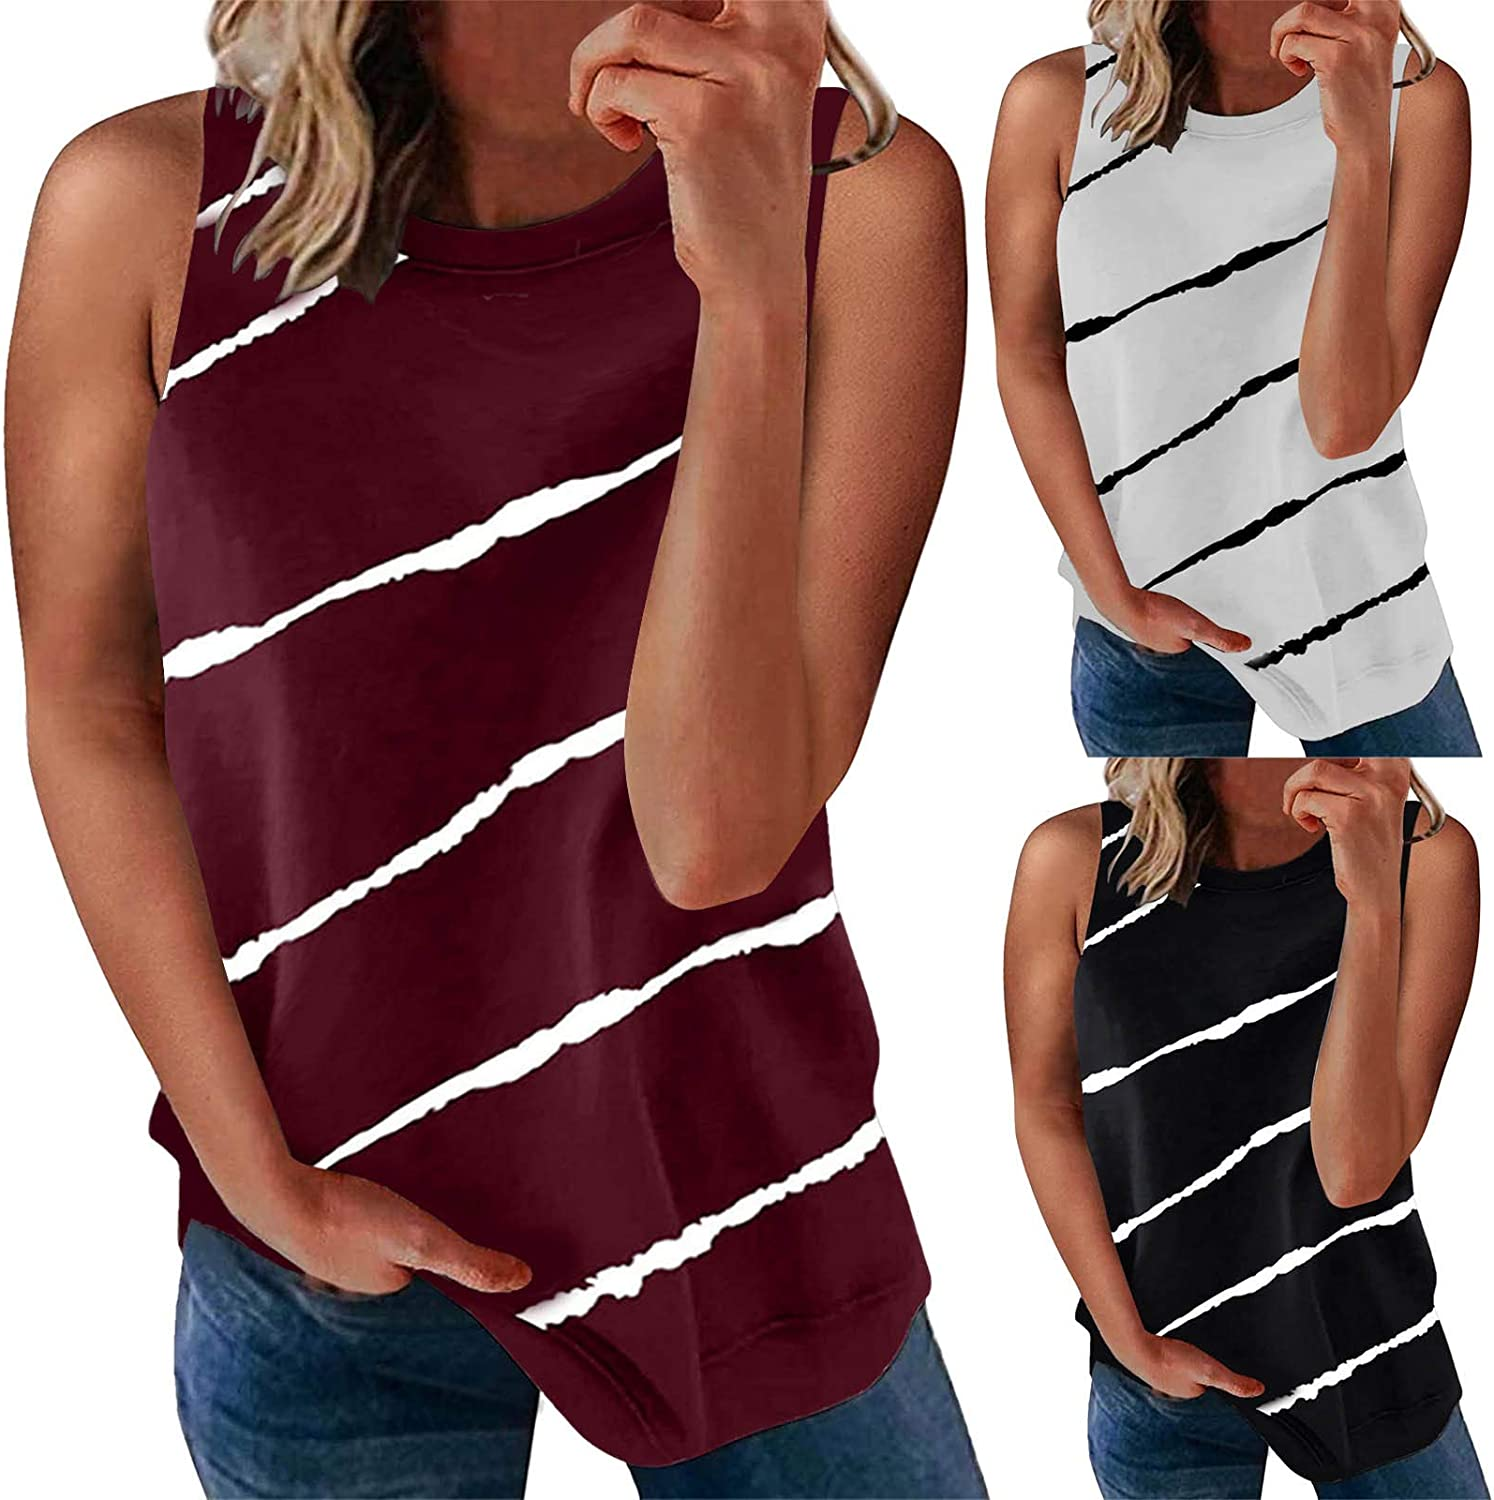 felwors Womens Camisoles and Tanks, Women's Summer Casual Wrinkled O Neck Strap Cami Loose Fit Tank Tops Vest Blouse Black